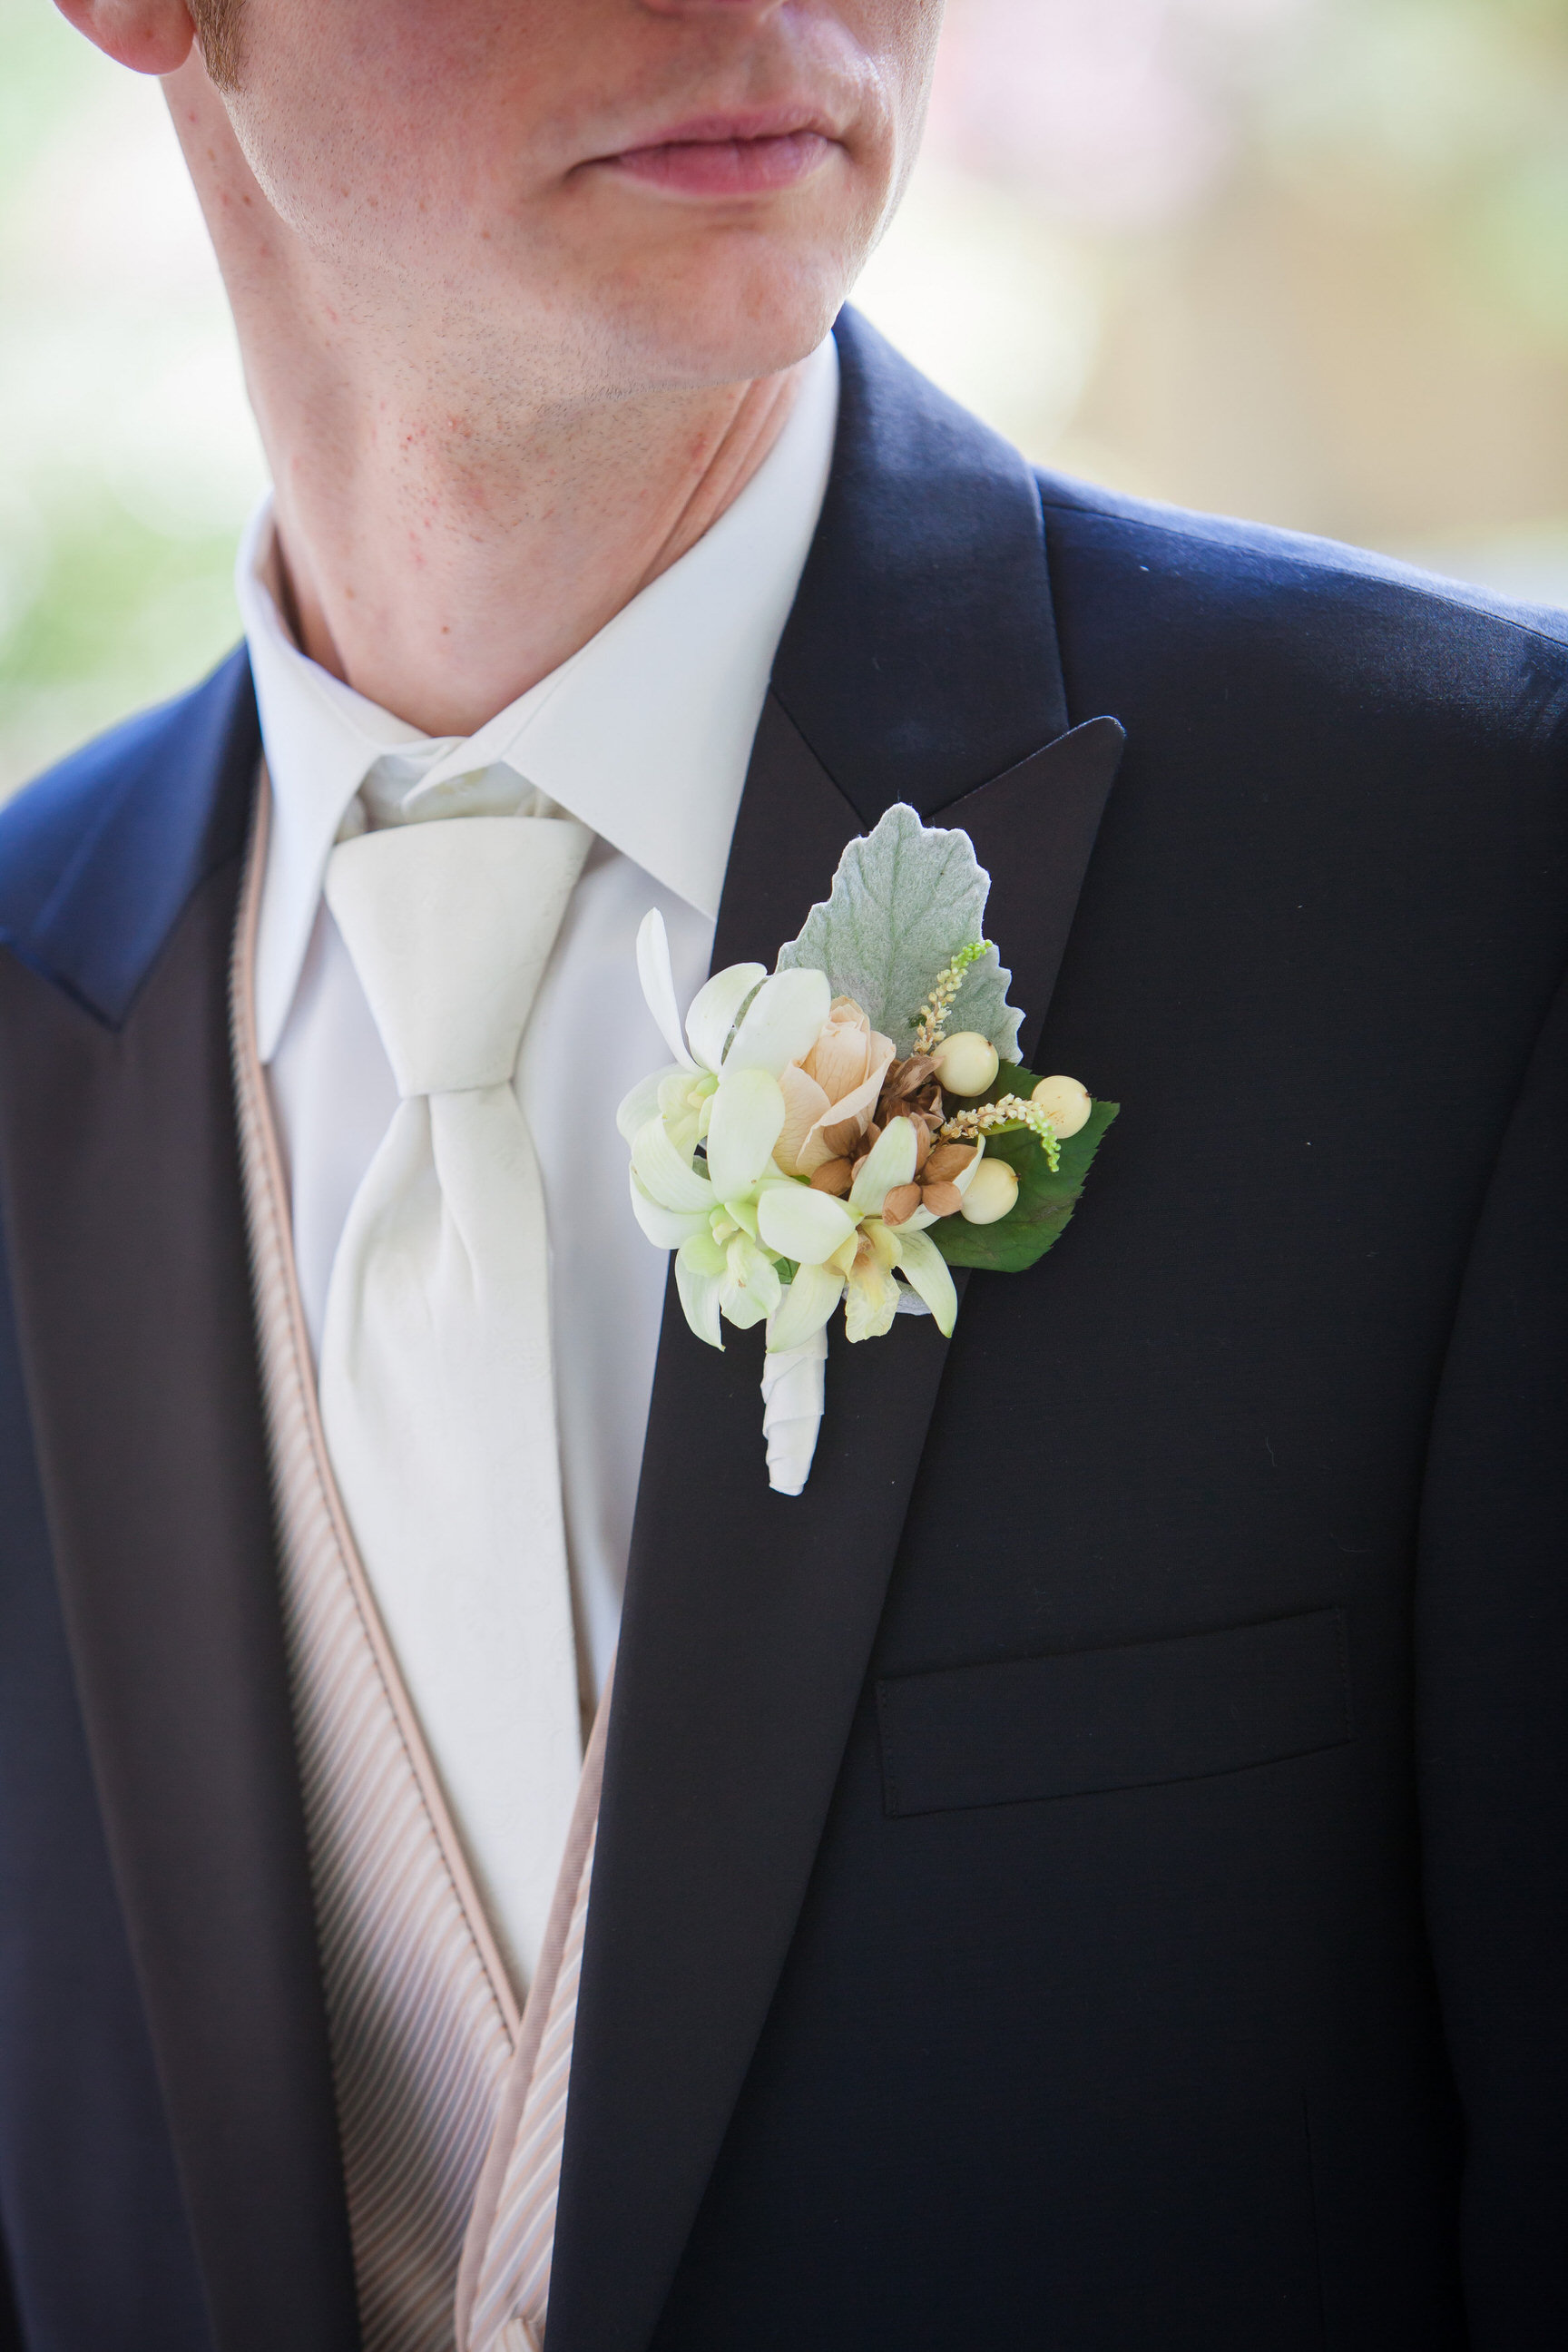 66 Ivory Blush Dusty Miller Grooms Boutonniere.jpg